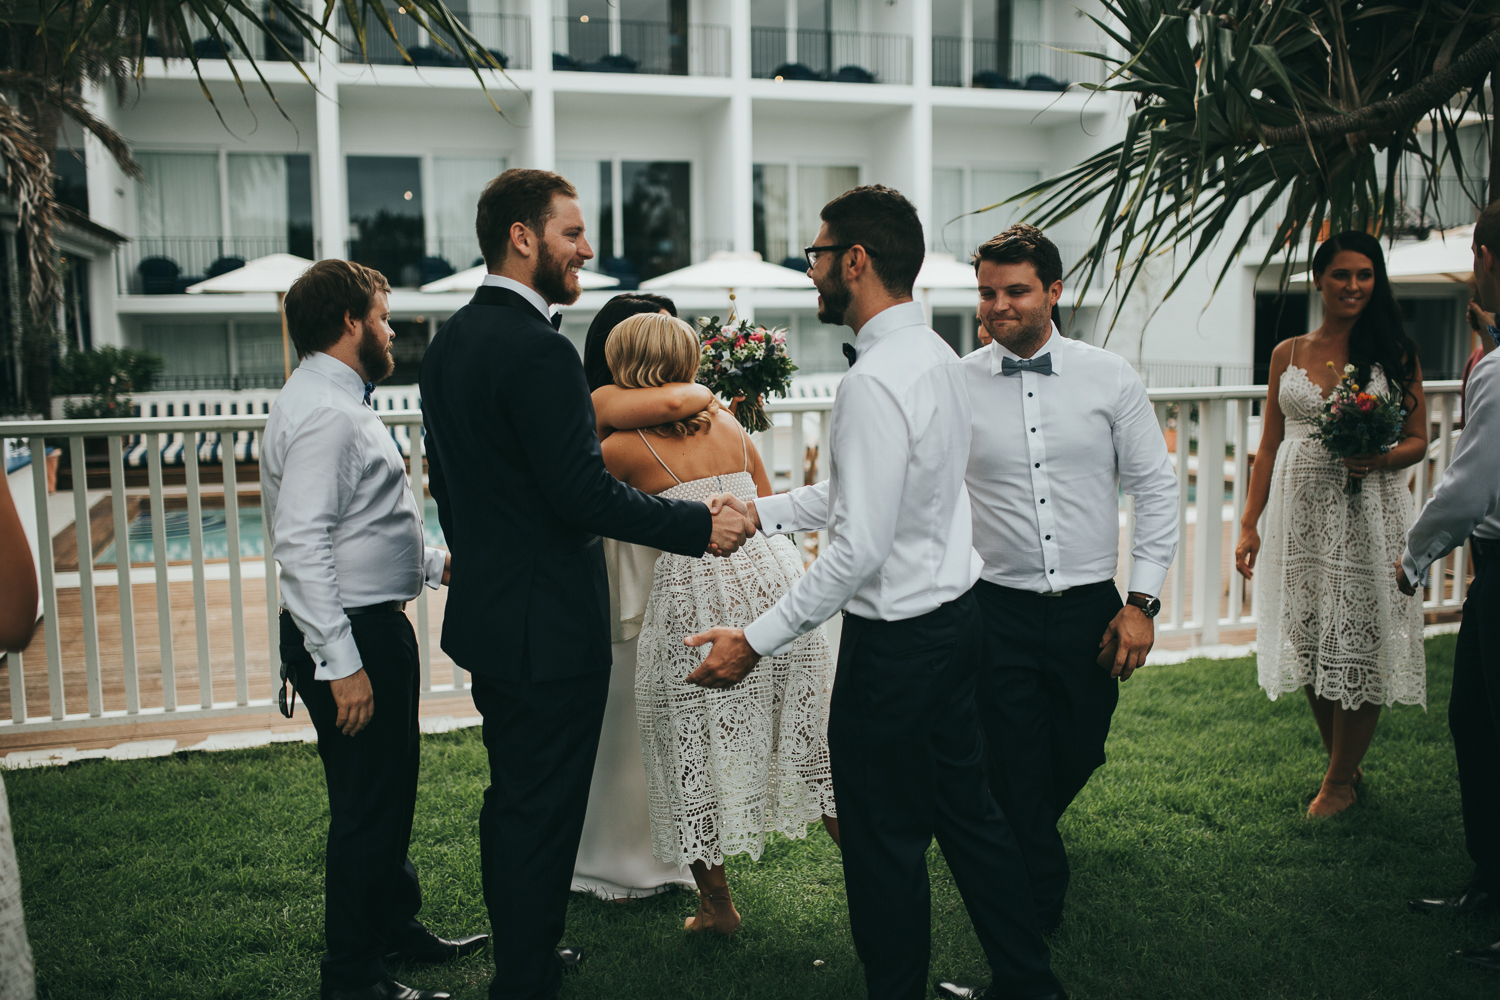 065-halcyon_house_byron_bay_wedding_photographer.jpg